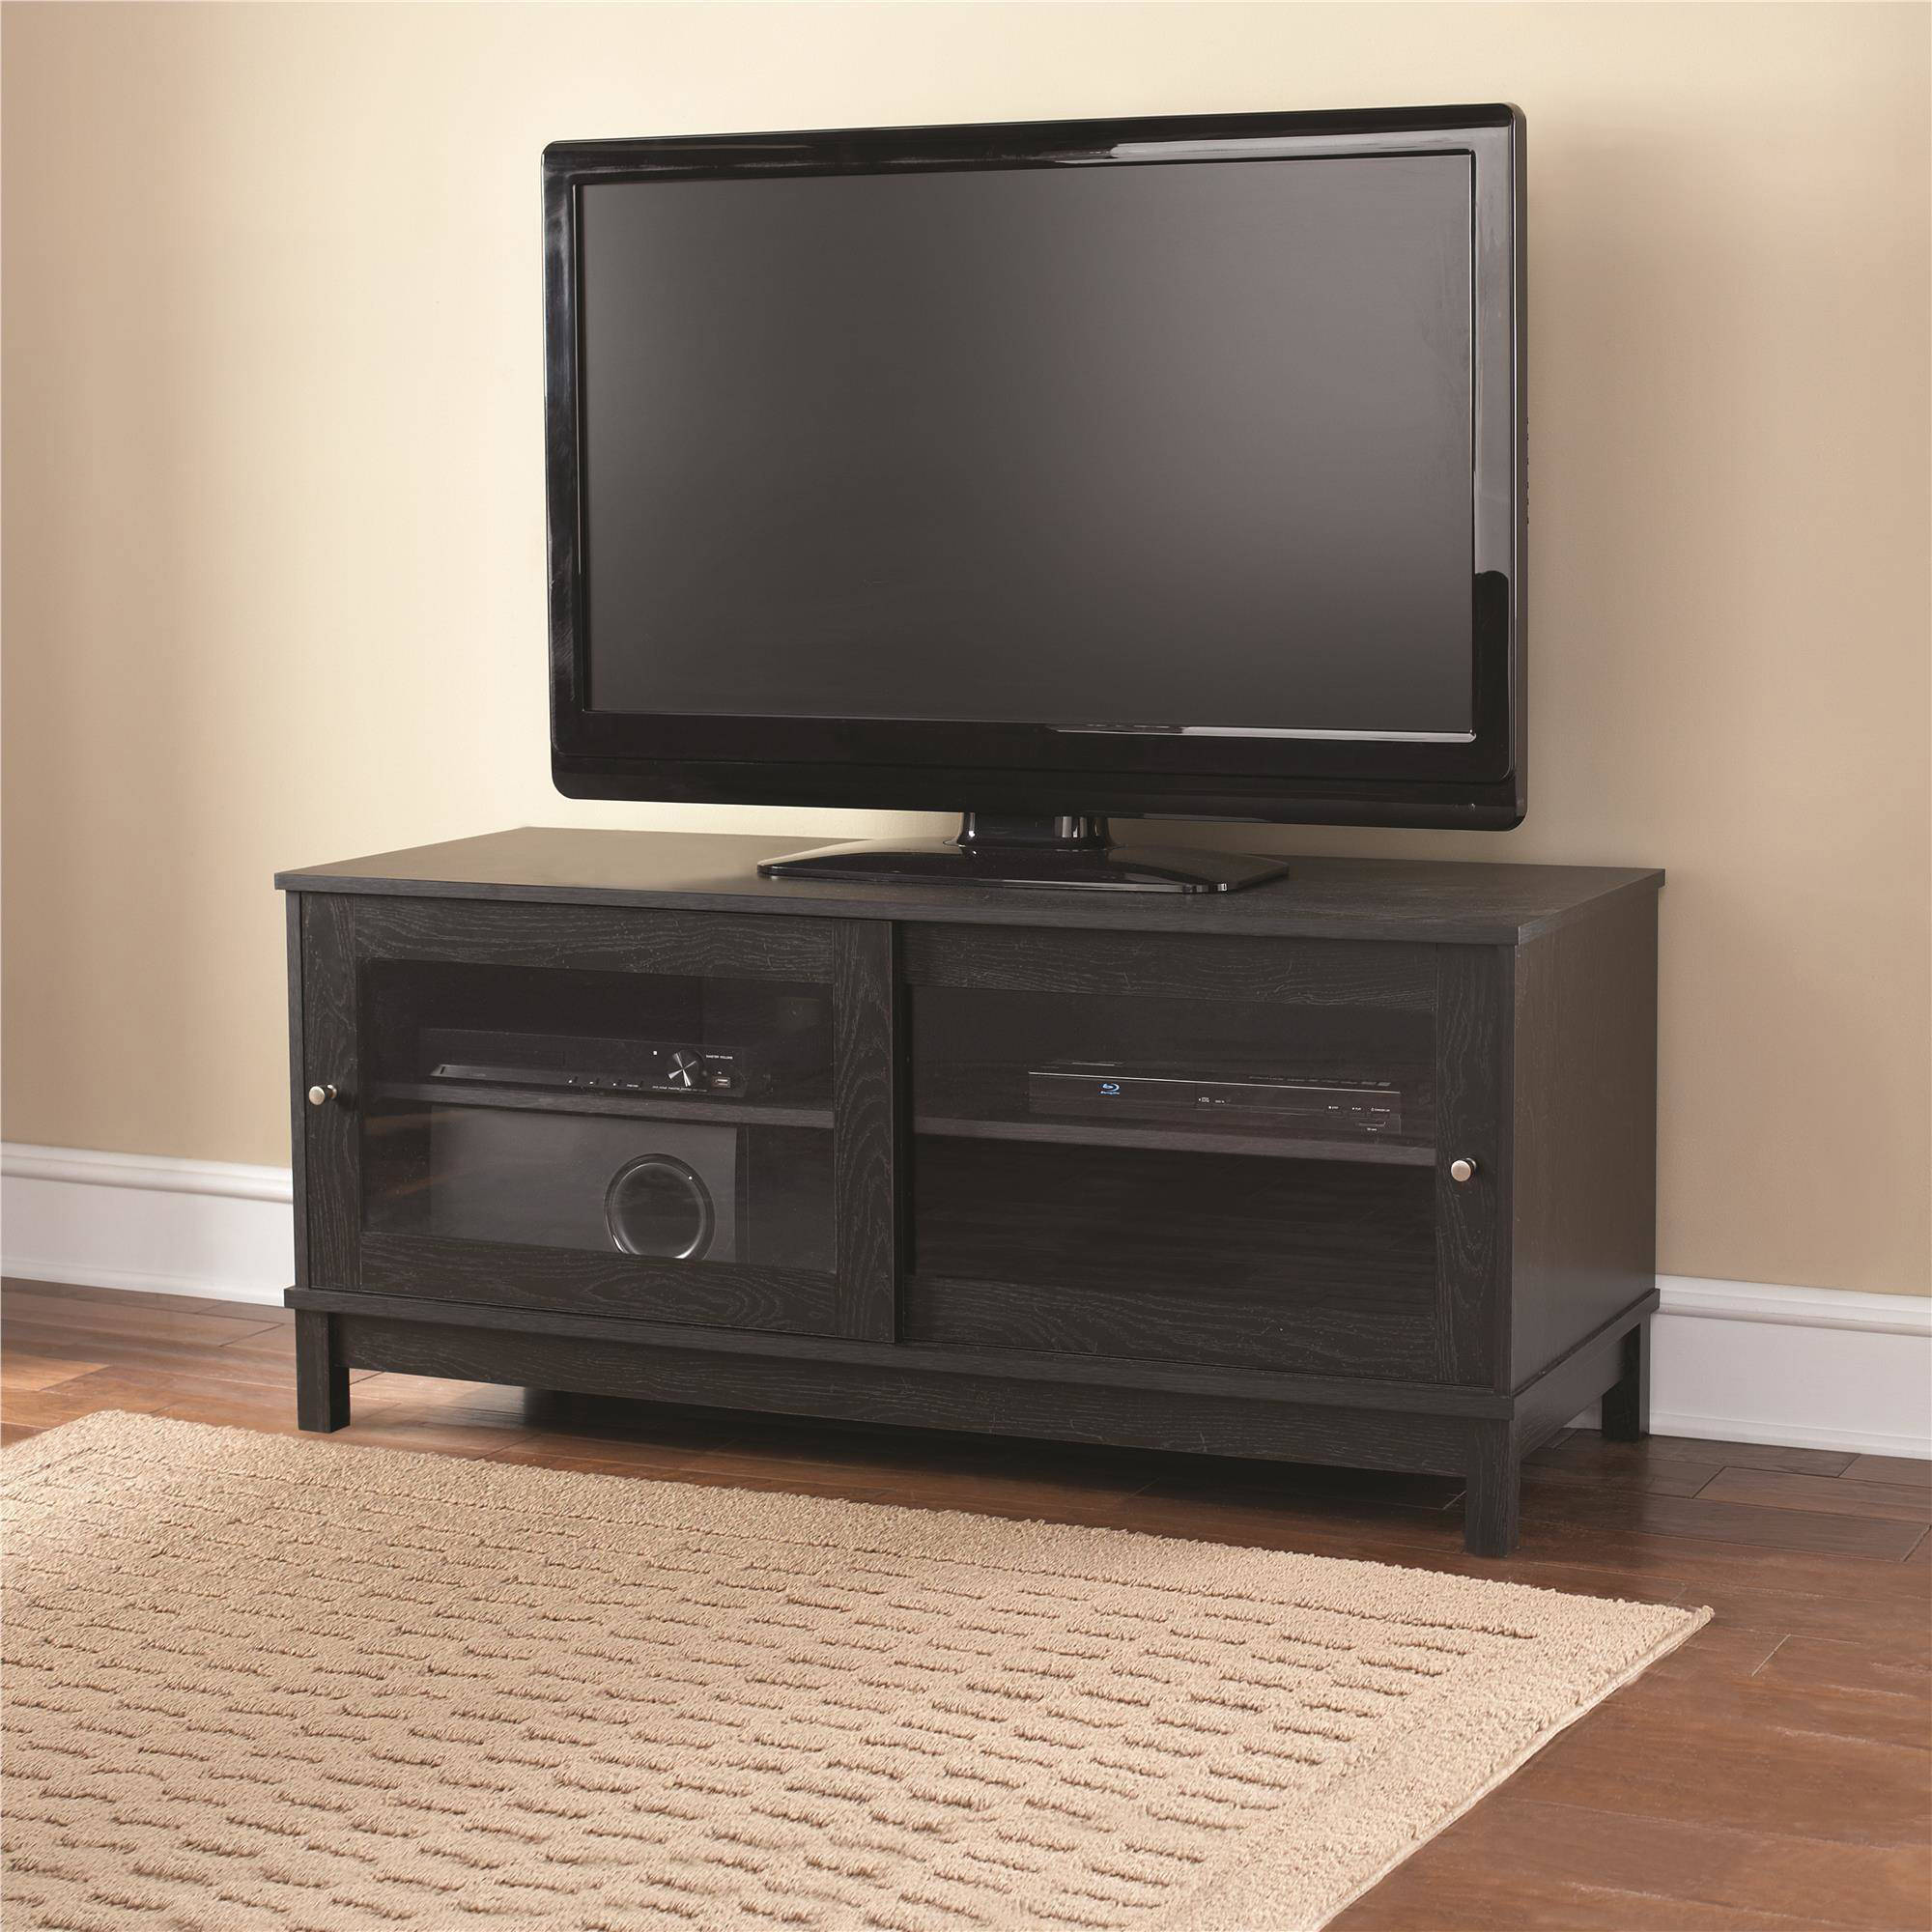 """Mainstays 55"""" TV Stand with Sliding Glass Doors, Multiple Colors"""